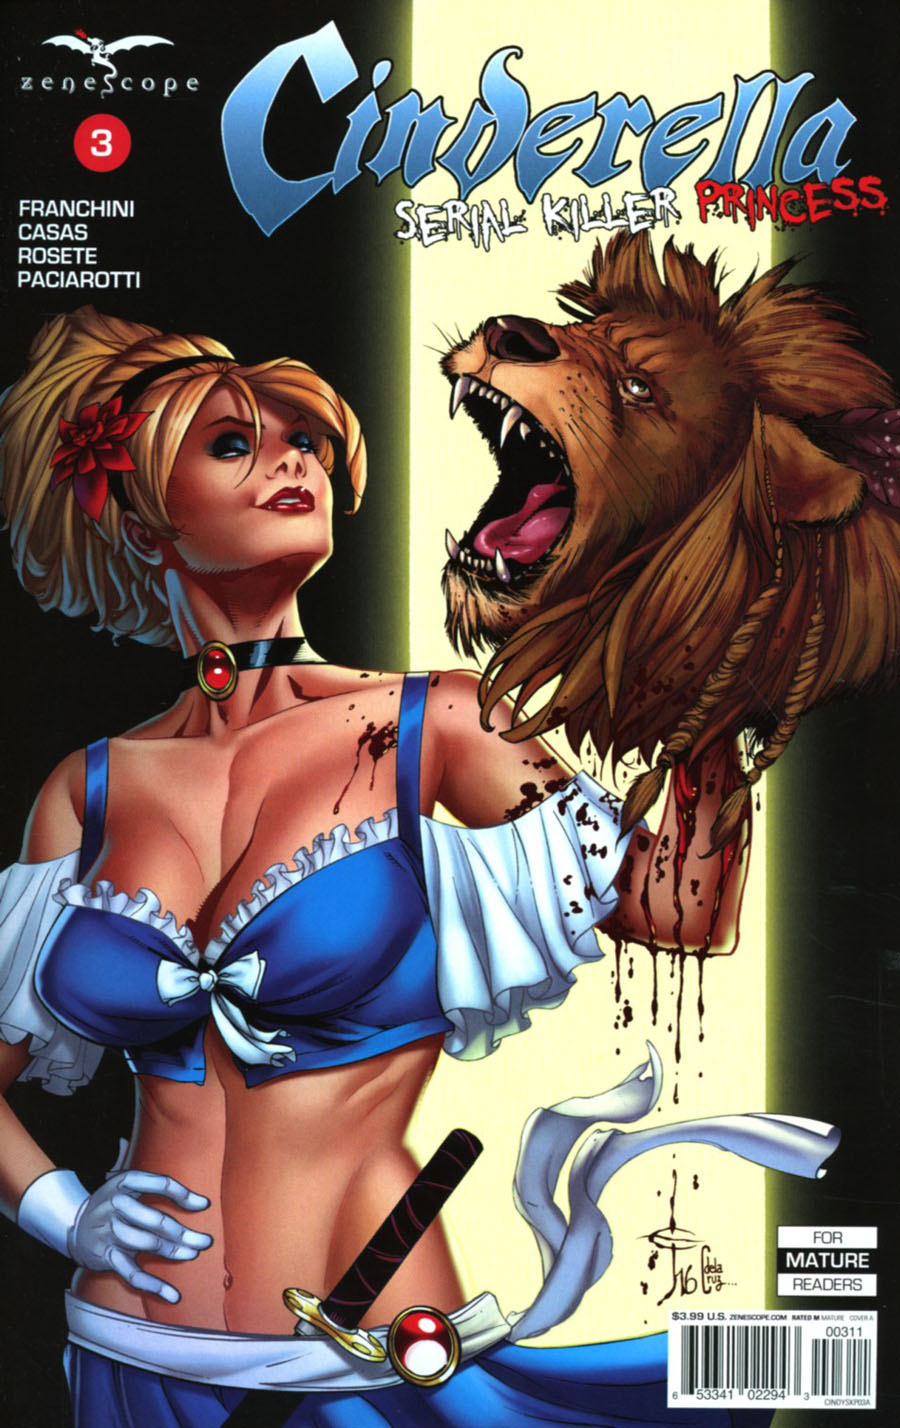 Grimm Fairy Tales Presents Cinderella Serial Killer Princess #3 Cover A Drew Edward Johnson